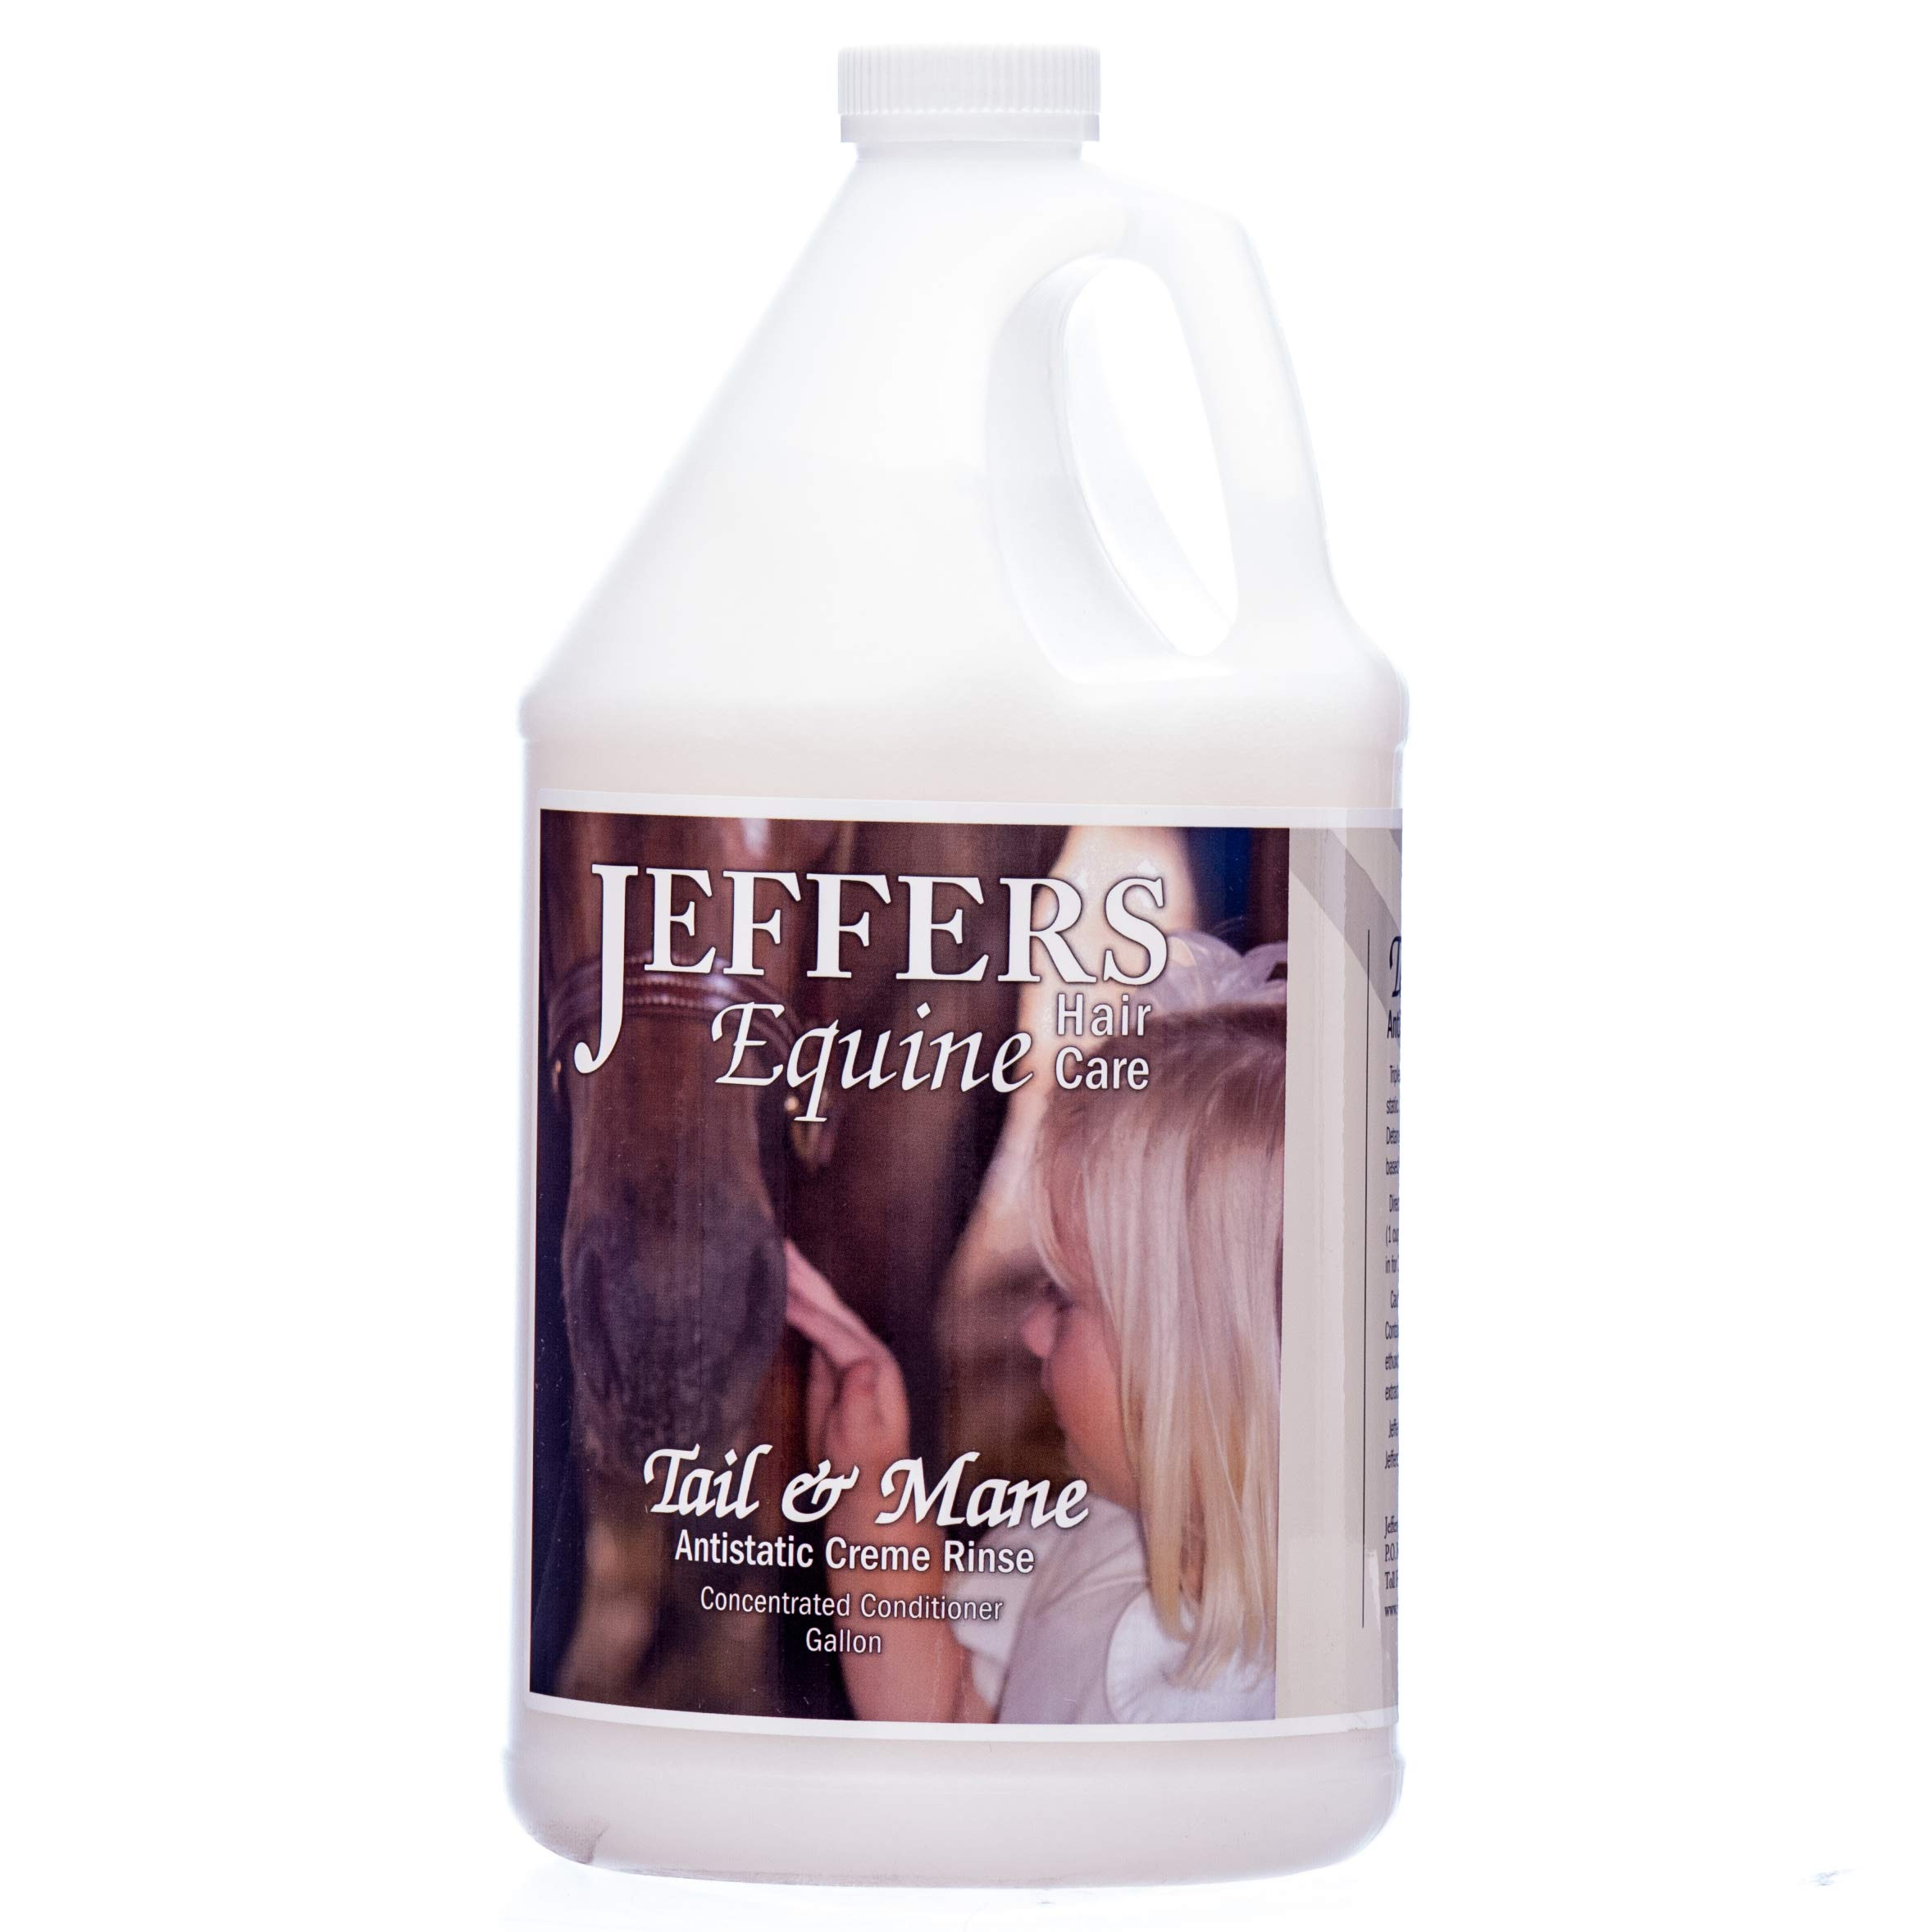 Jeffers Tail & Mane Anti-Static Creme Rinse, Gallon by Jeffers